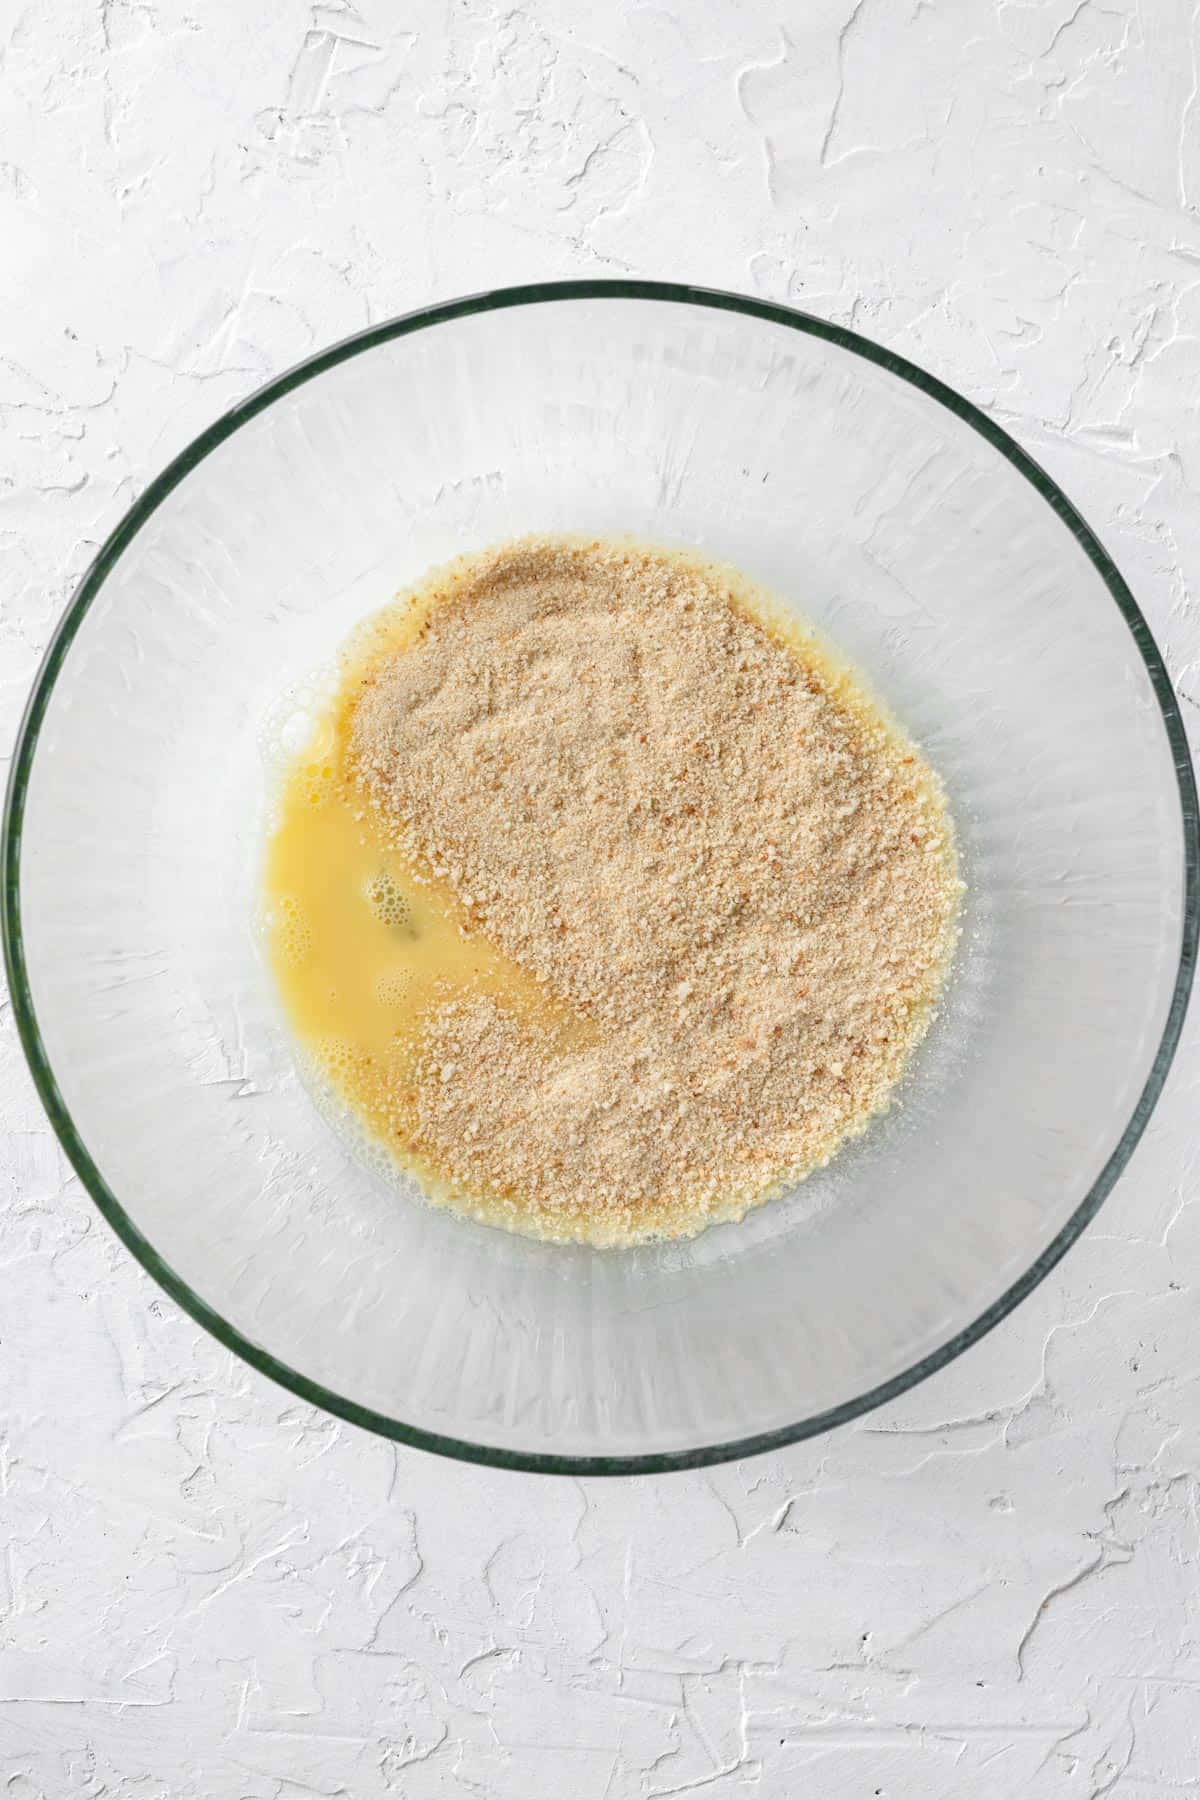 Beaten eggs topped with breadcrumbs in a glass bowl.